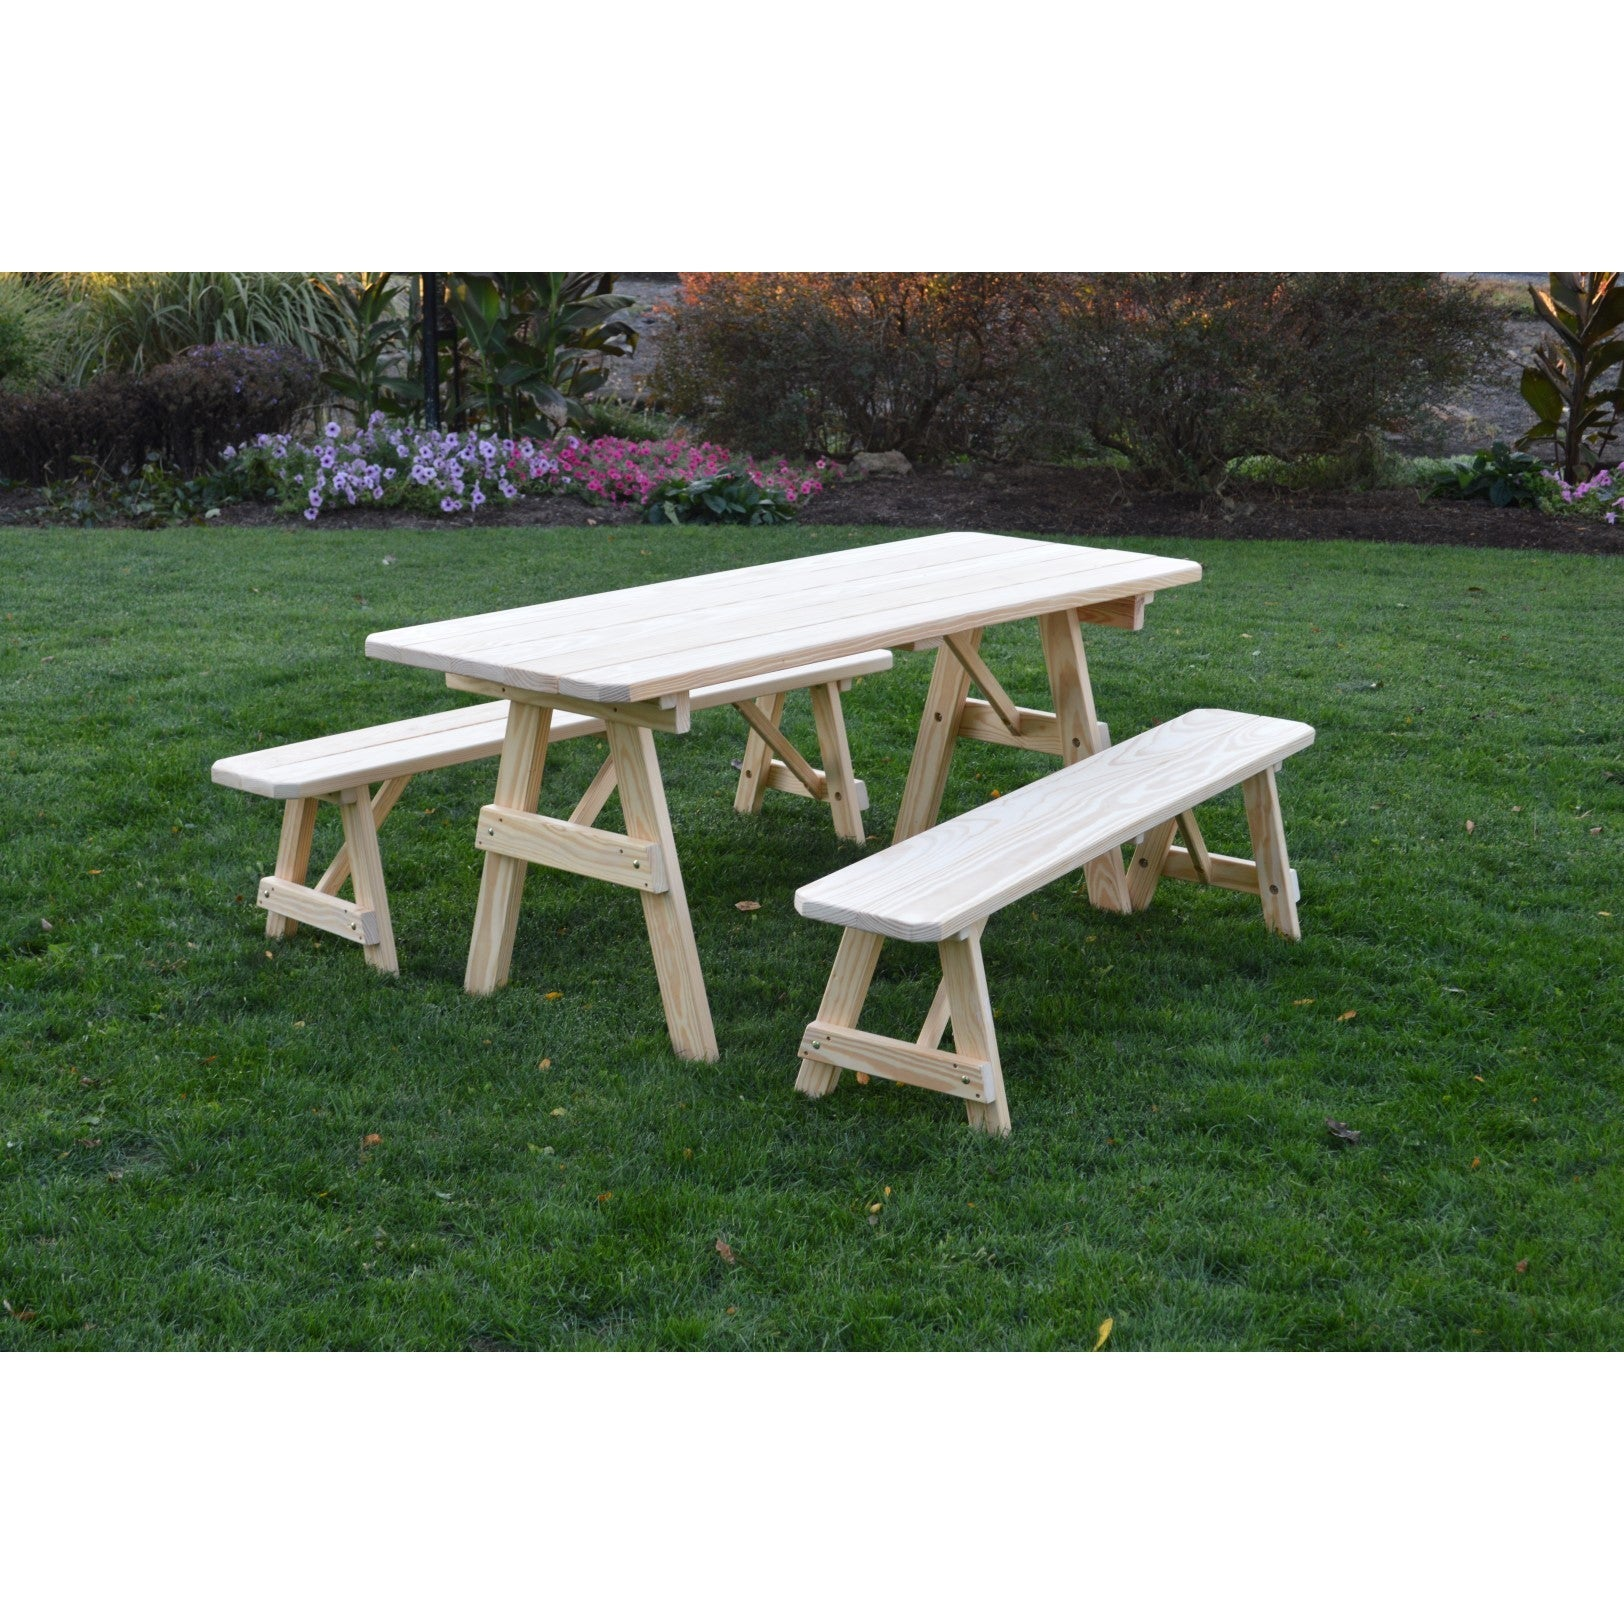 Unfinished Picnic Table With Detached Benches In Pressure Treated Pine